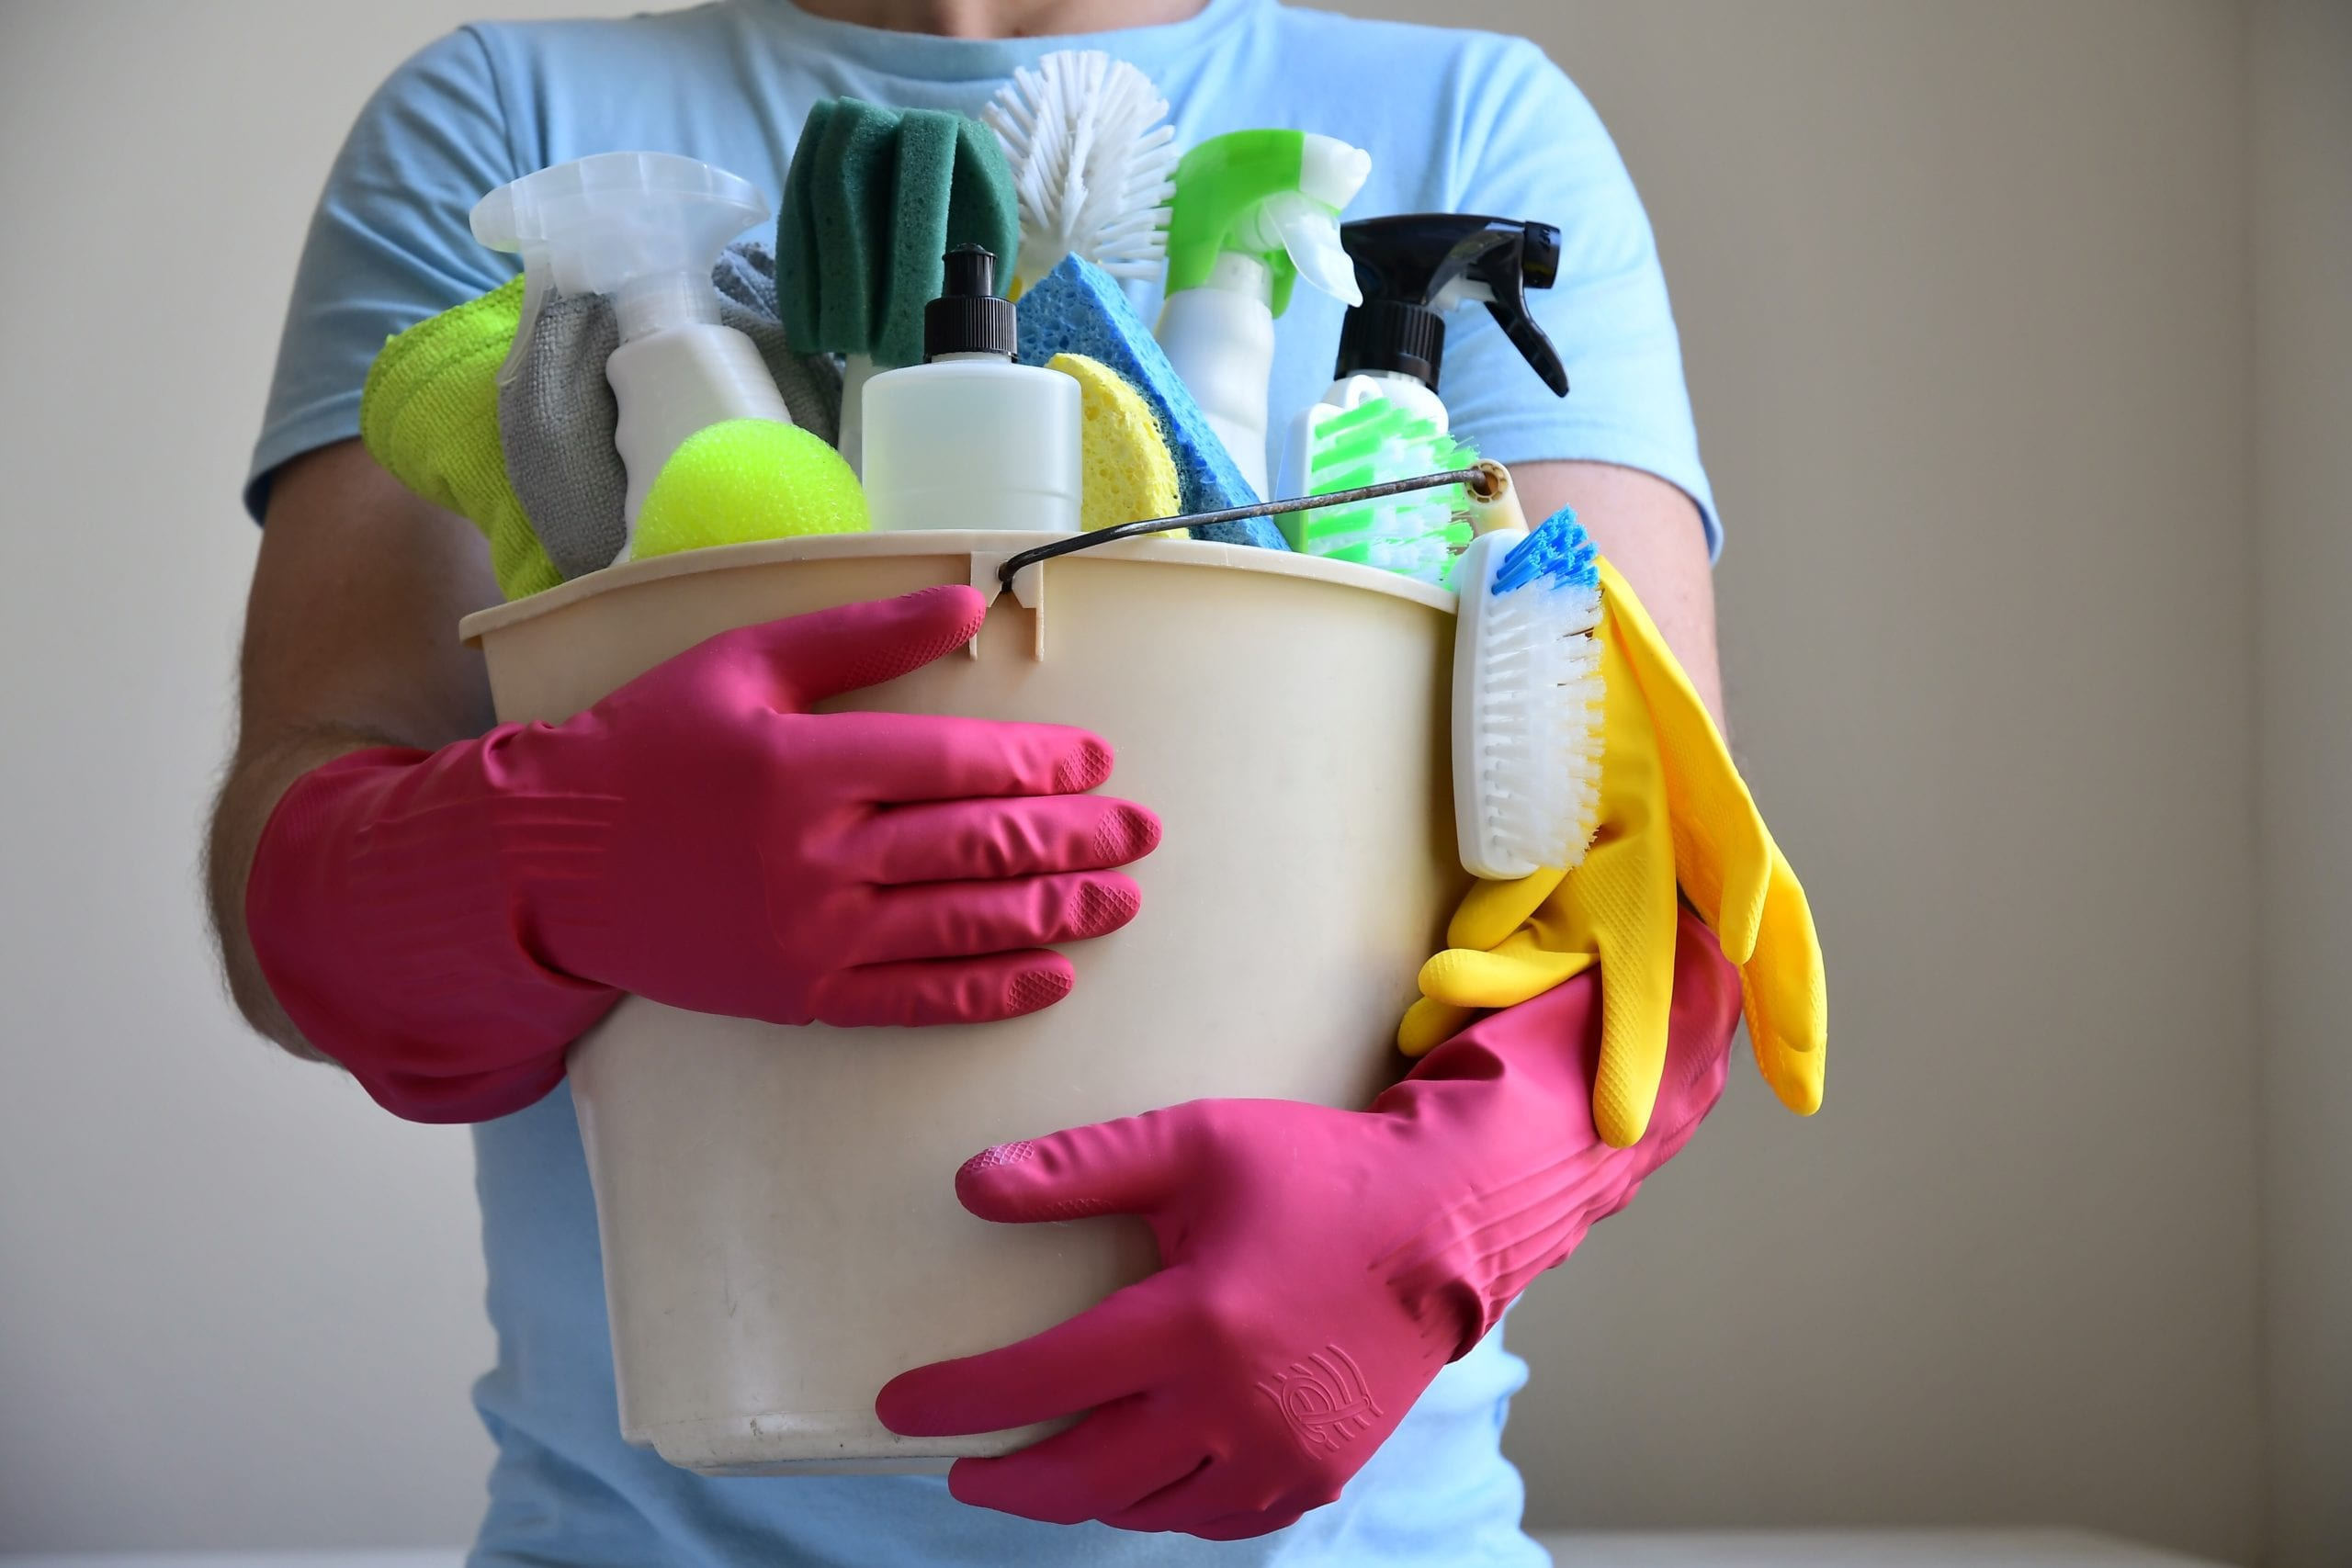 Five Benefits of Private Label Household Cleaners